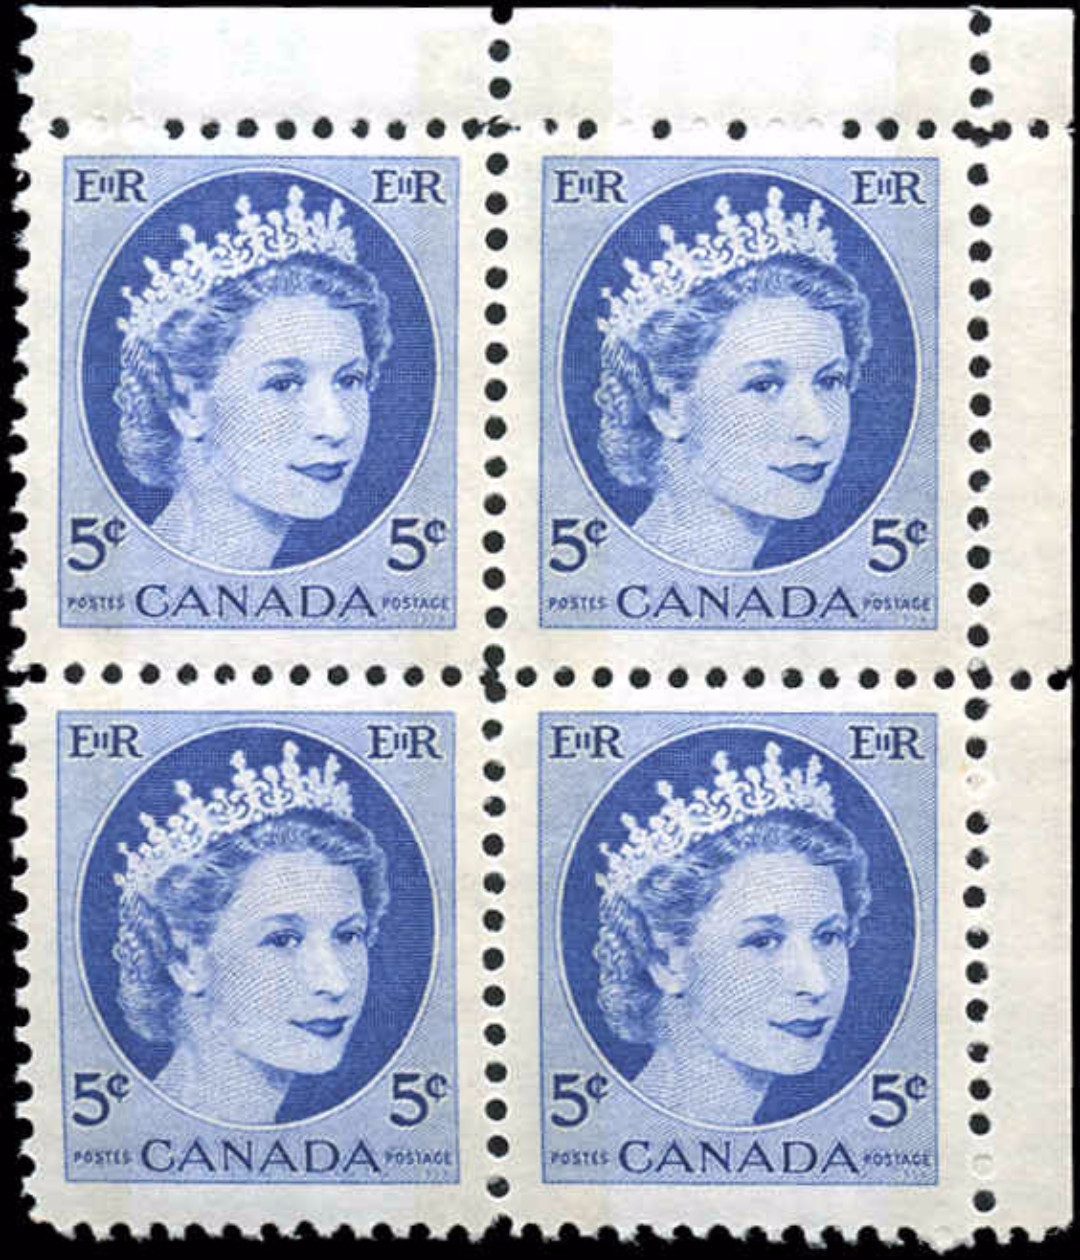 Canada #341p, QEII Issue, F-VF, MNH